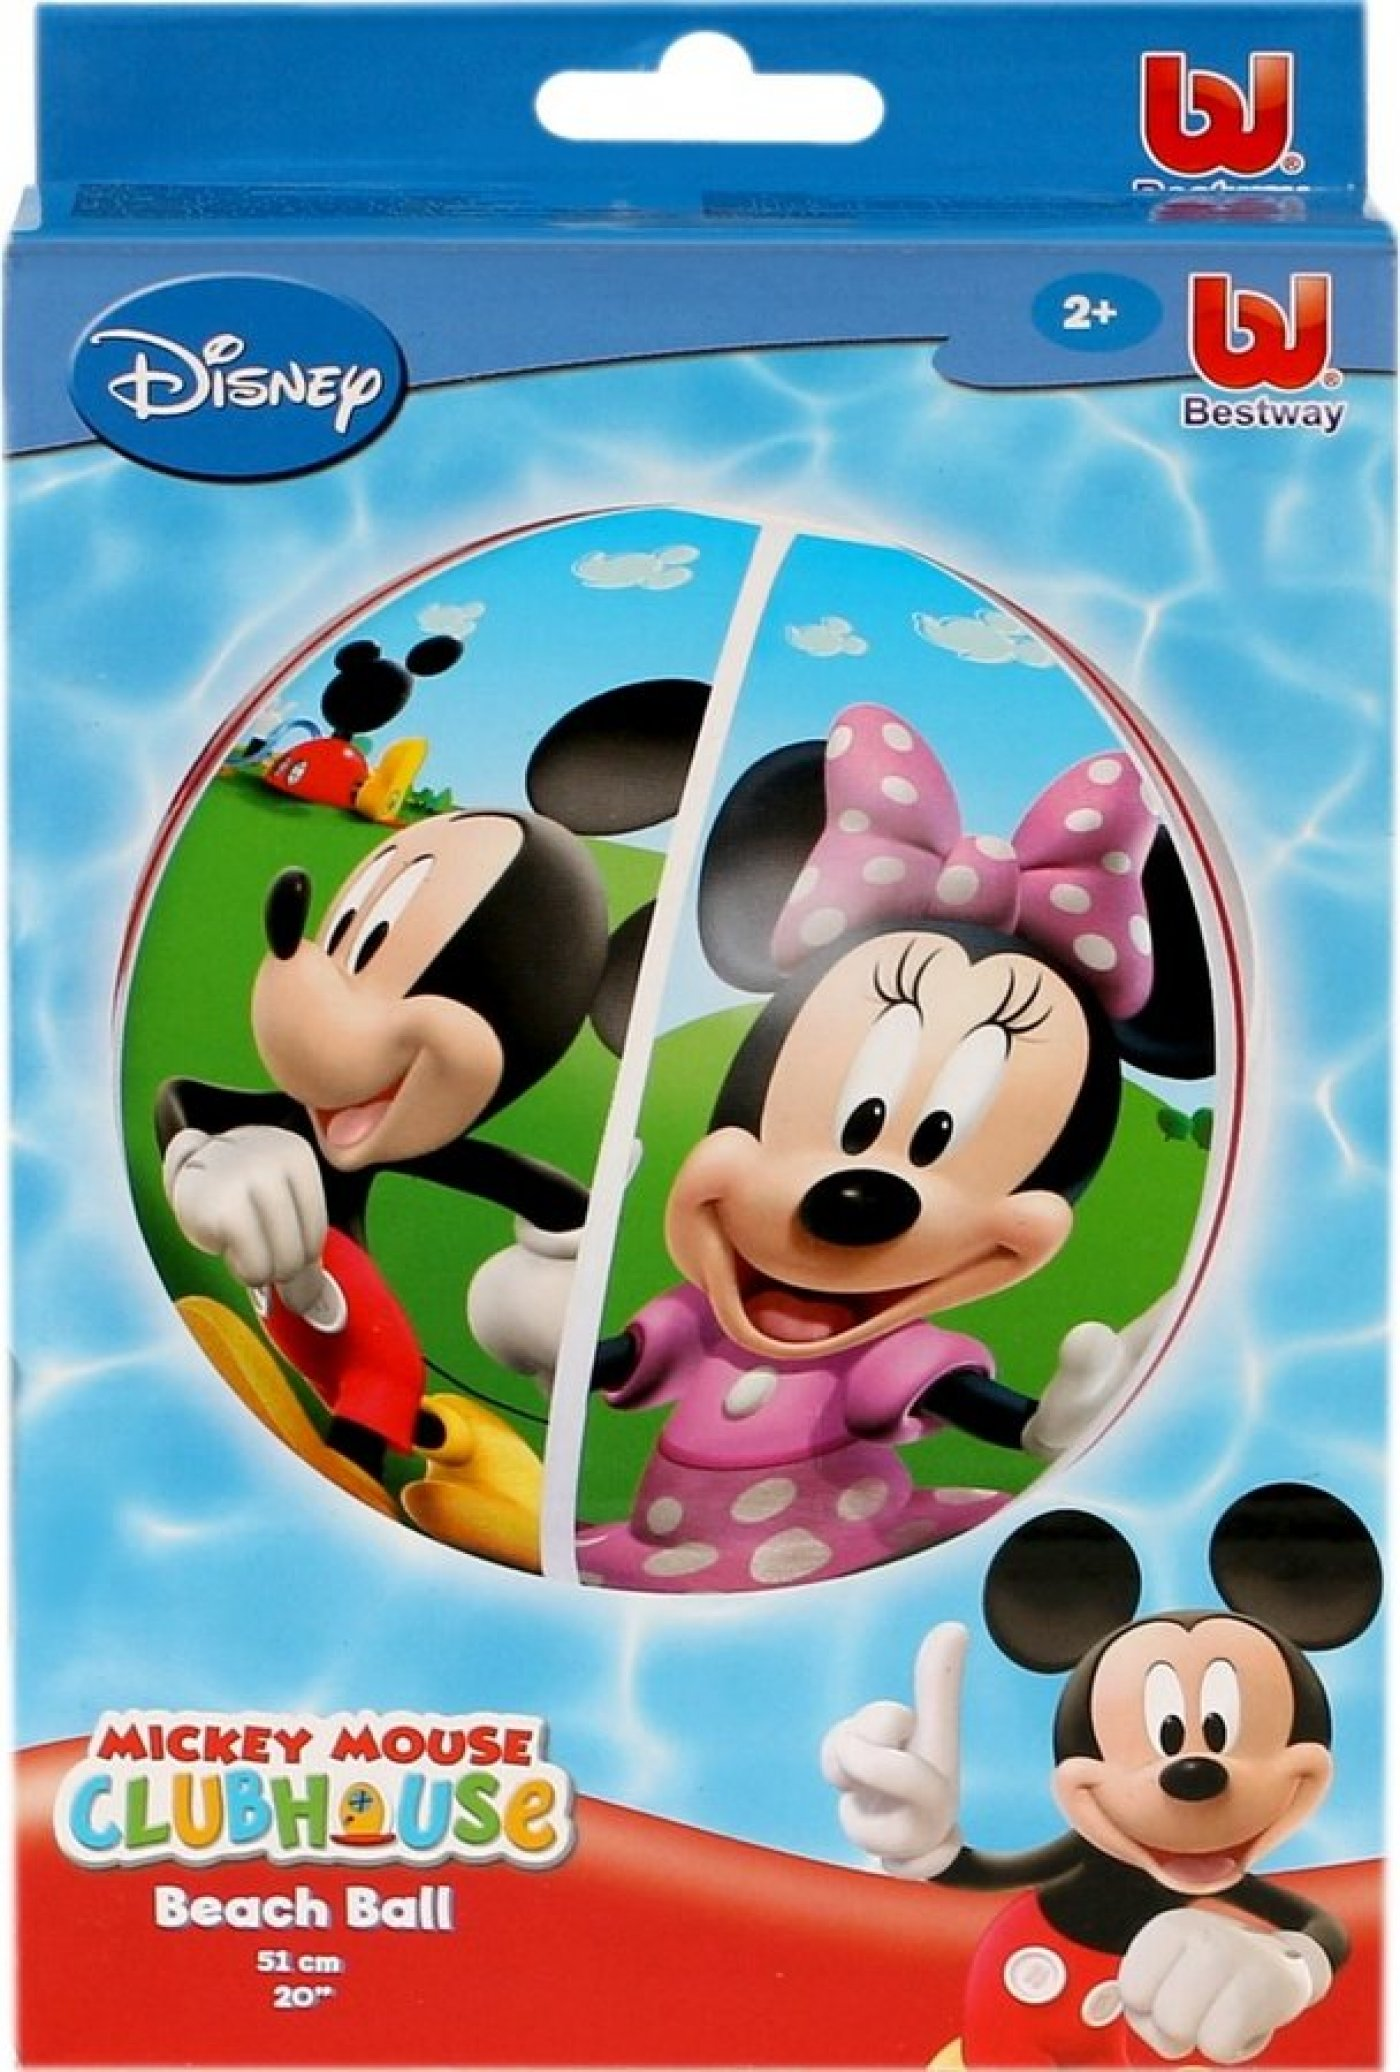 Pelota de Mickey Beach Ball de 51 Cm